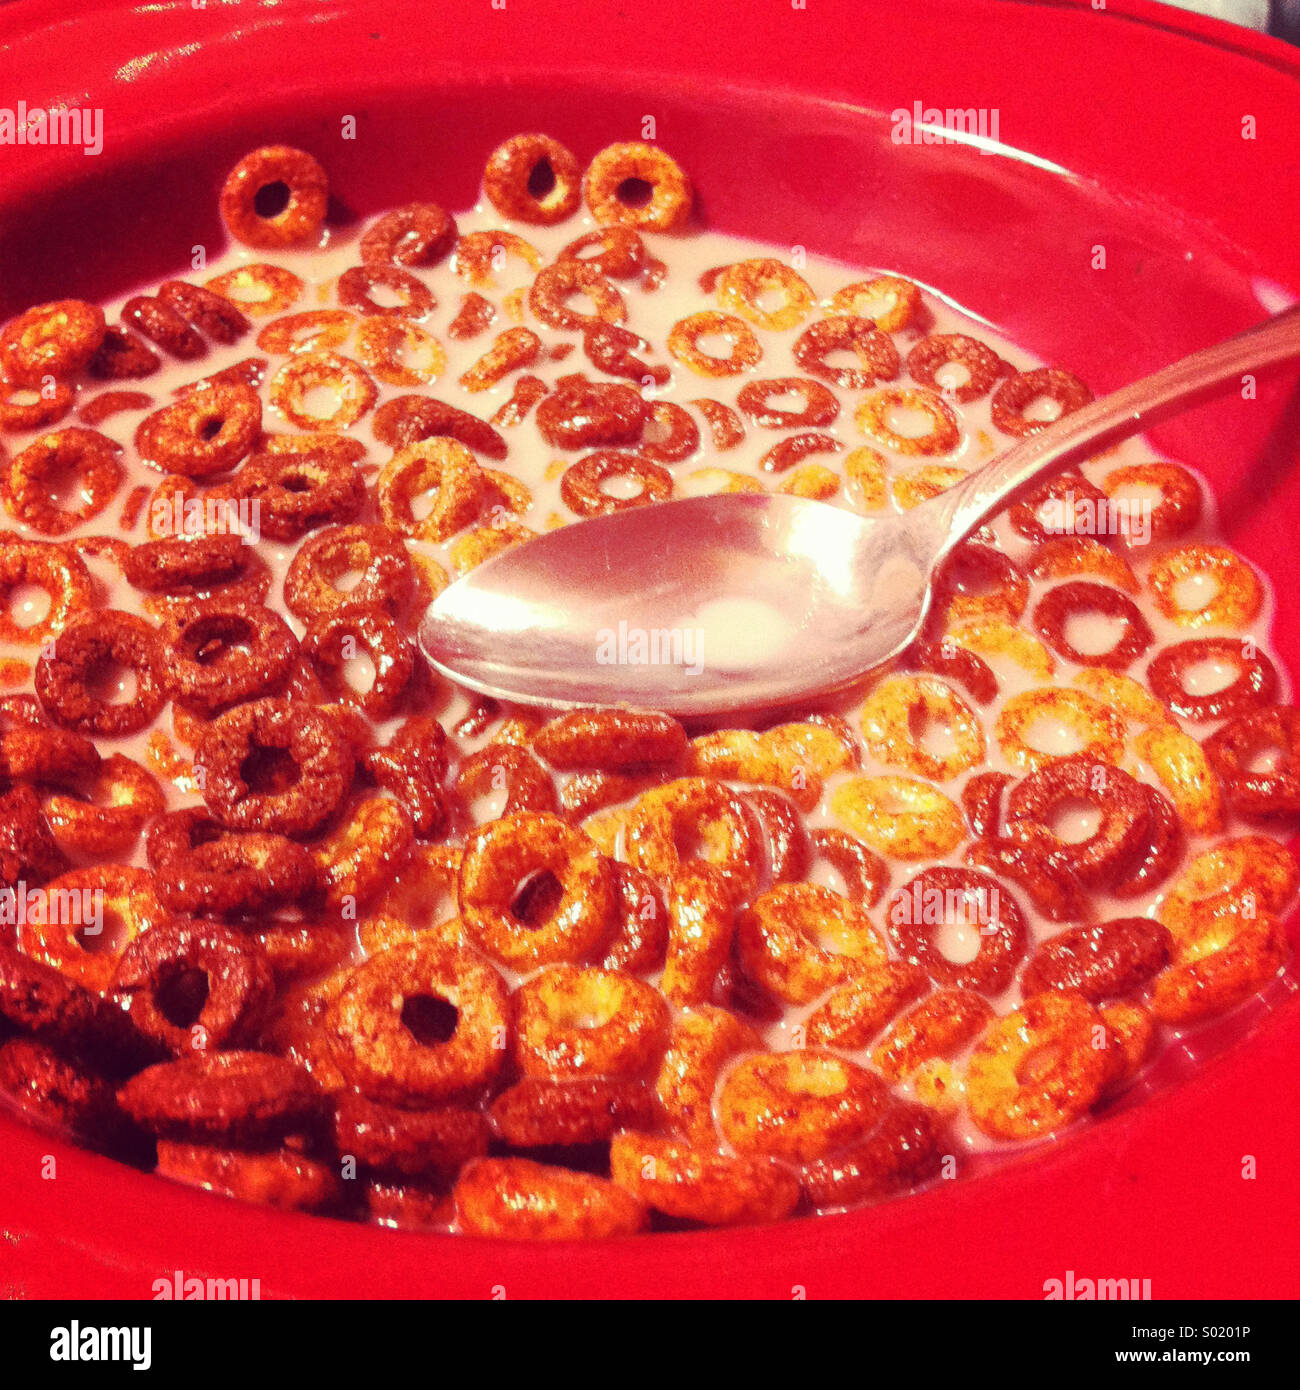 A bowl of Cerwal and milk in a red bowl with a spoon - Stock Image